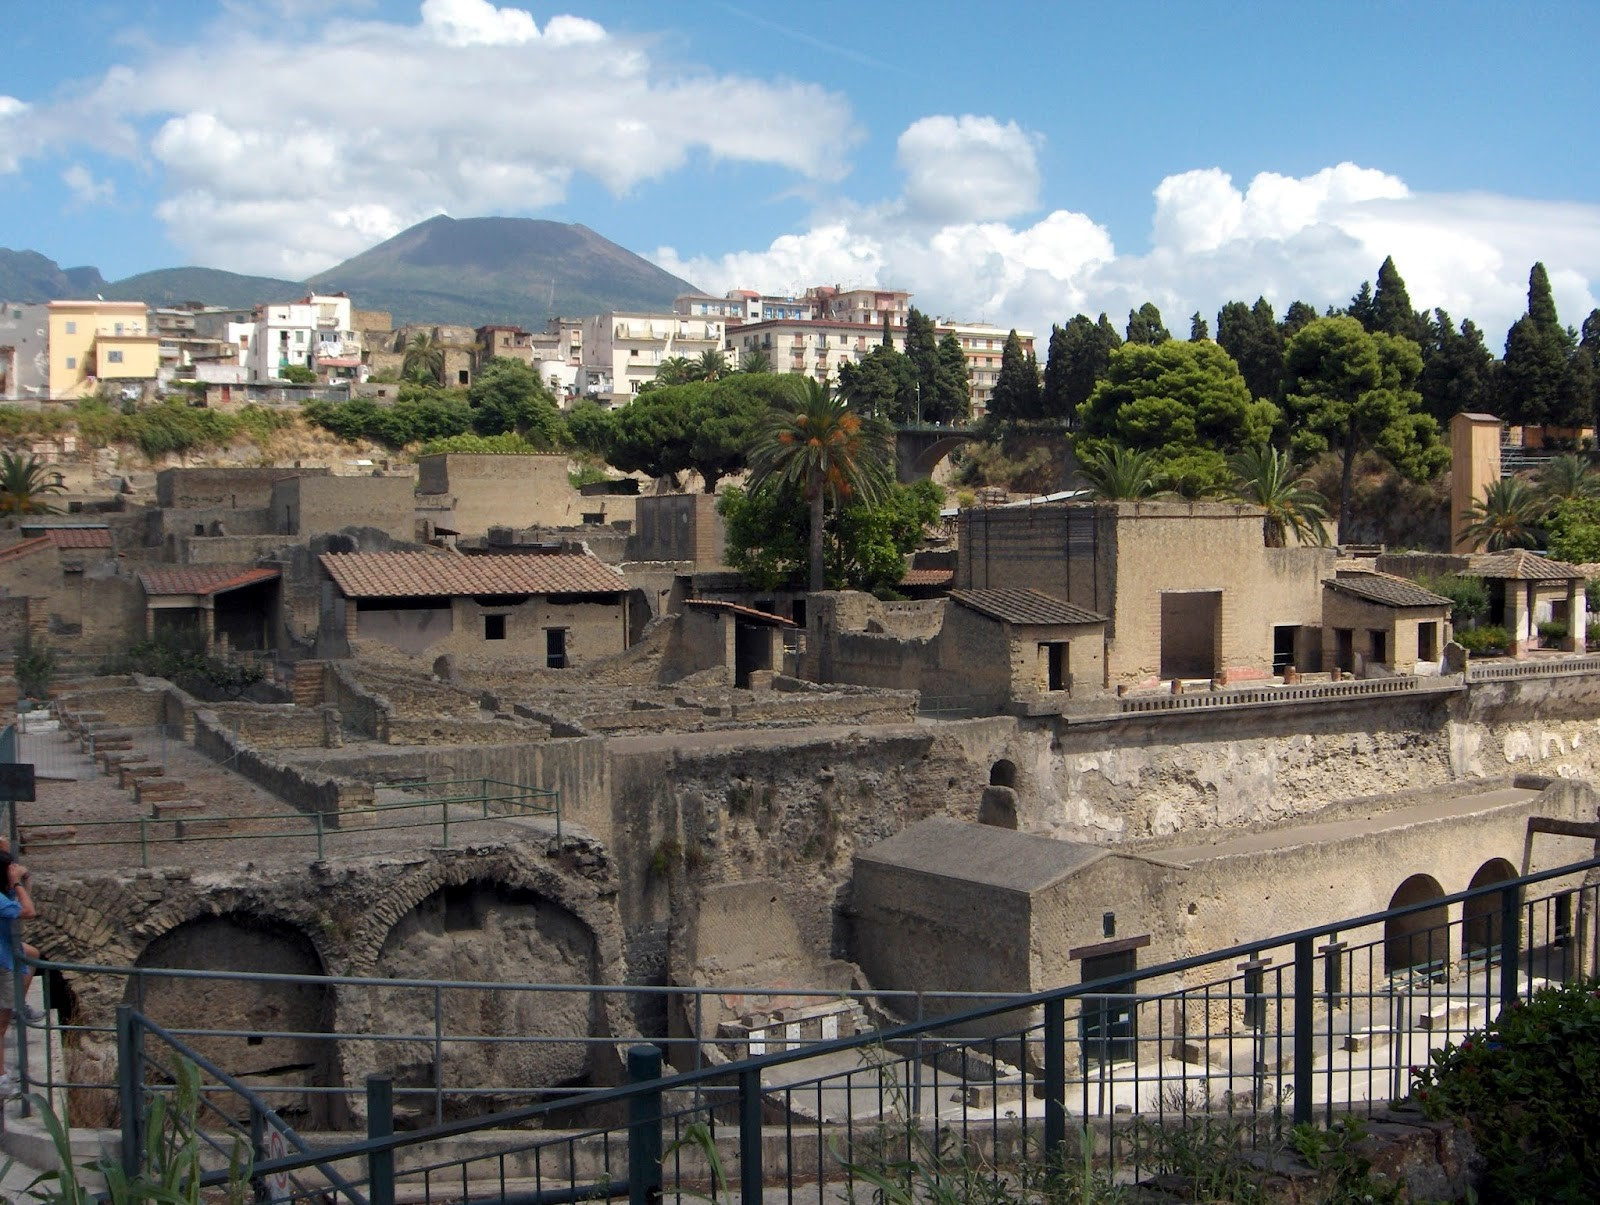 Pompeii, Herculaneum, Italy, Naples, Vesuvius, ancient roam, Romans, Italia, holiday, visiting Pompeii, How to get to Pompeii, tips, vacation, Sorrento, travel, travelling, Europe, backpacking,